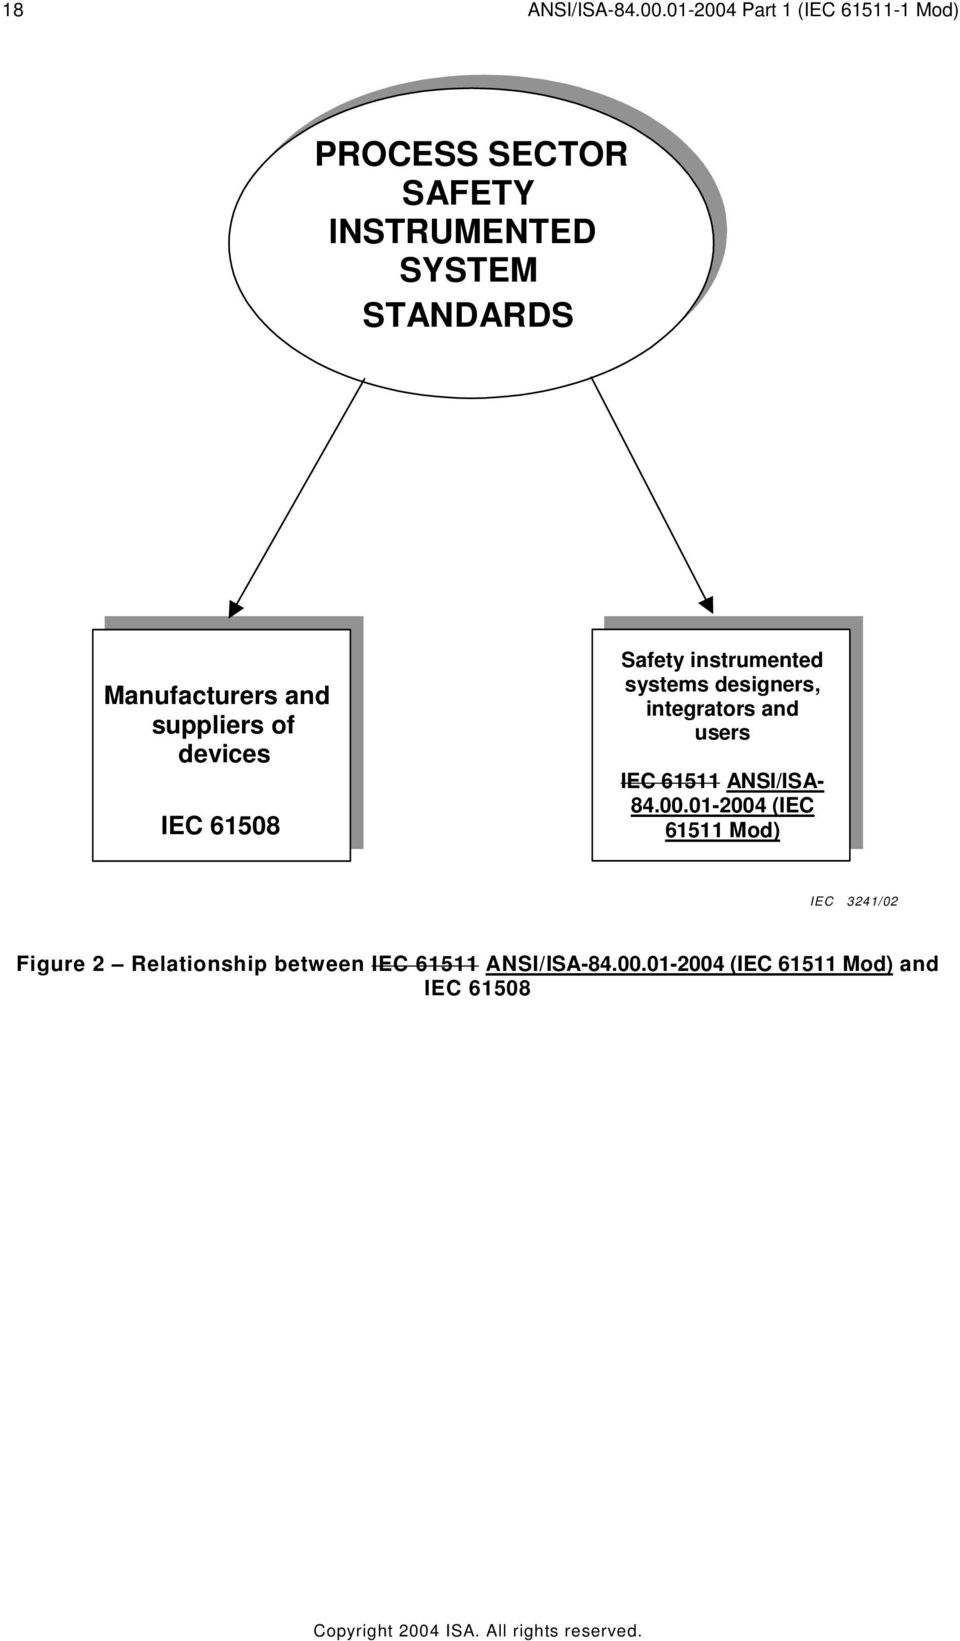 iec 61511 1 pdf free download